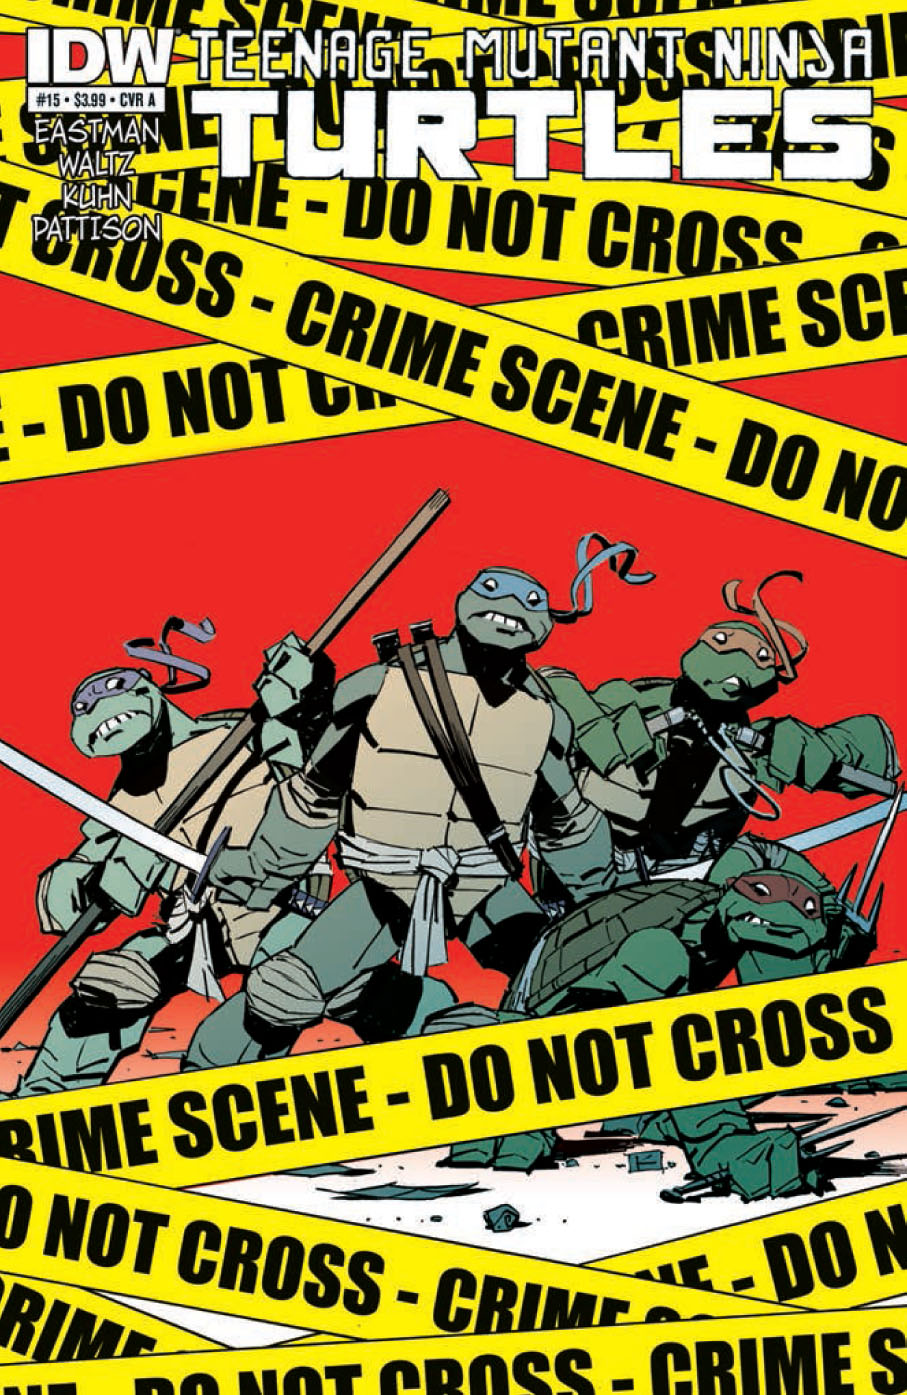 TMNT 15 C Teenage Mutant Ninja Turtles #15 Review